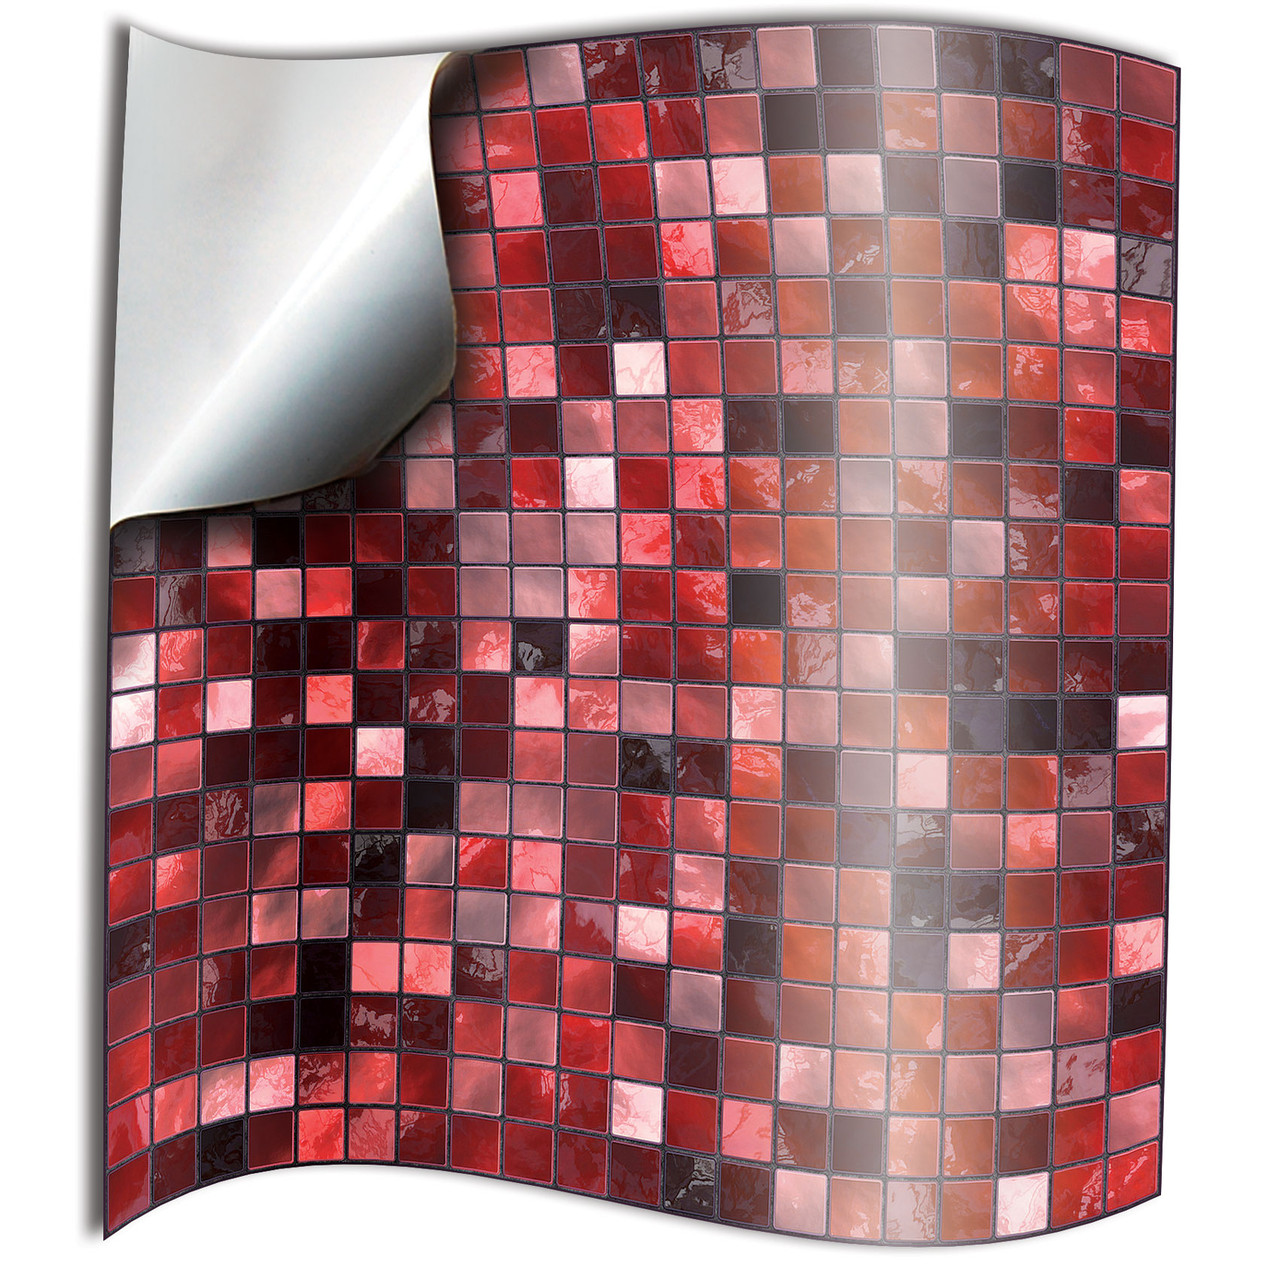 24 Red Tile Stickers Kitchen Bathroom Tile Transfers 6x6 inch budget cheap  red Mosaic Style Tile Stickers Transfers 6x6 inches uk discount